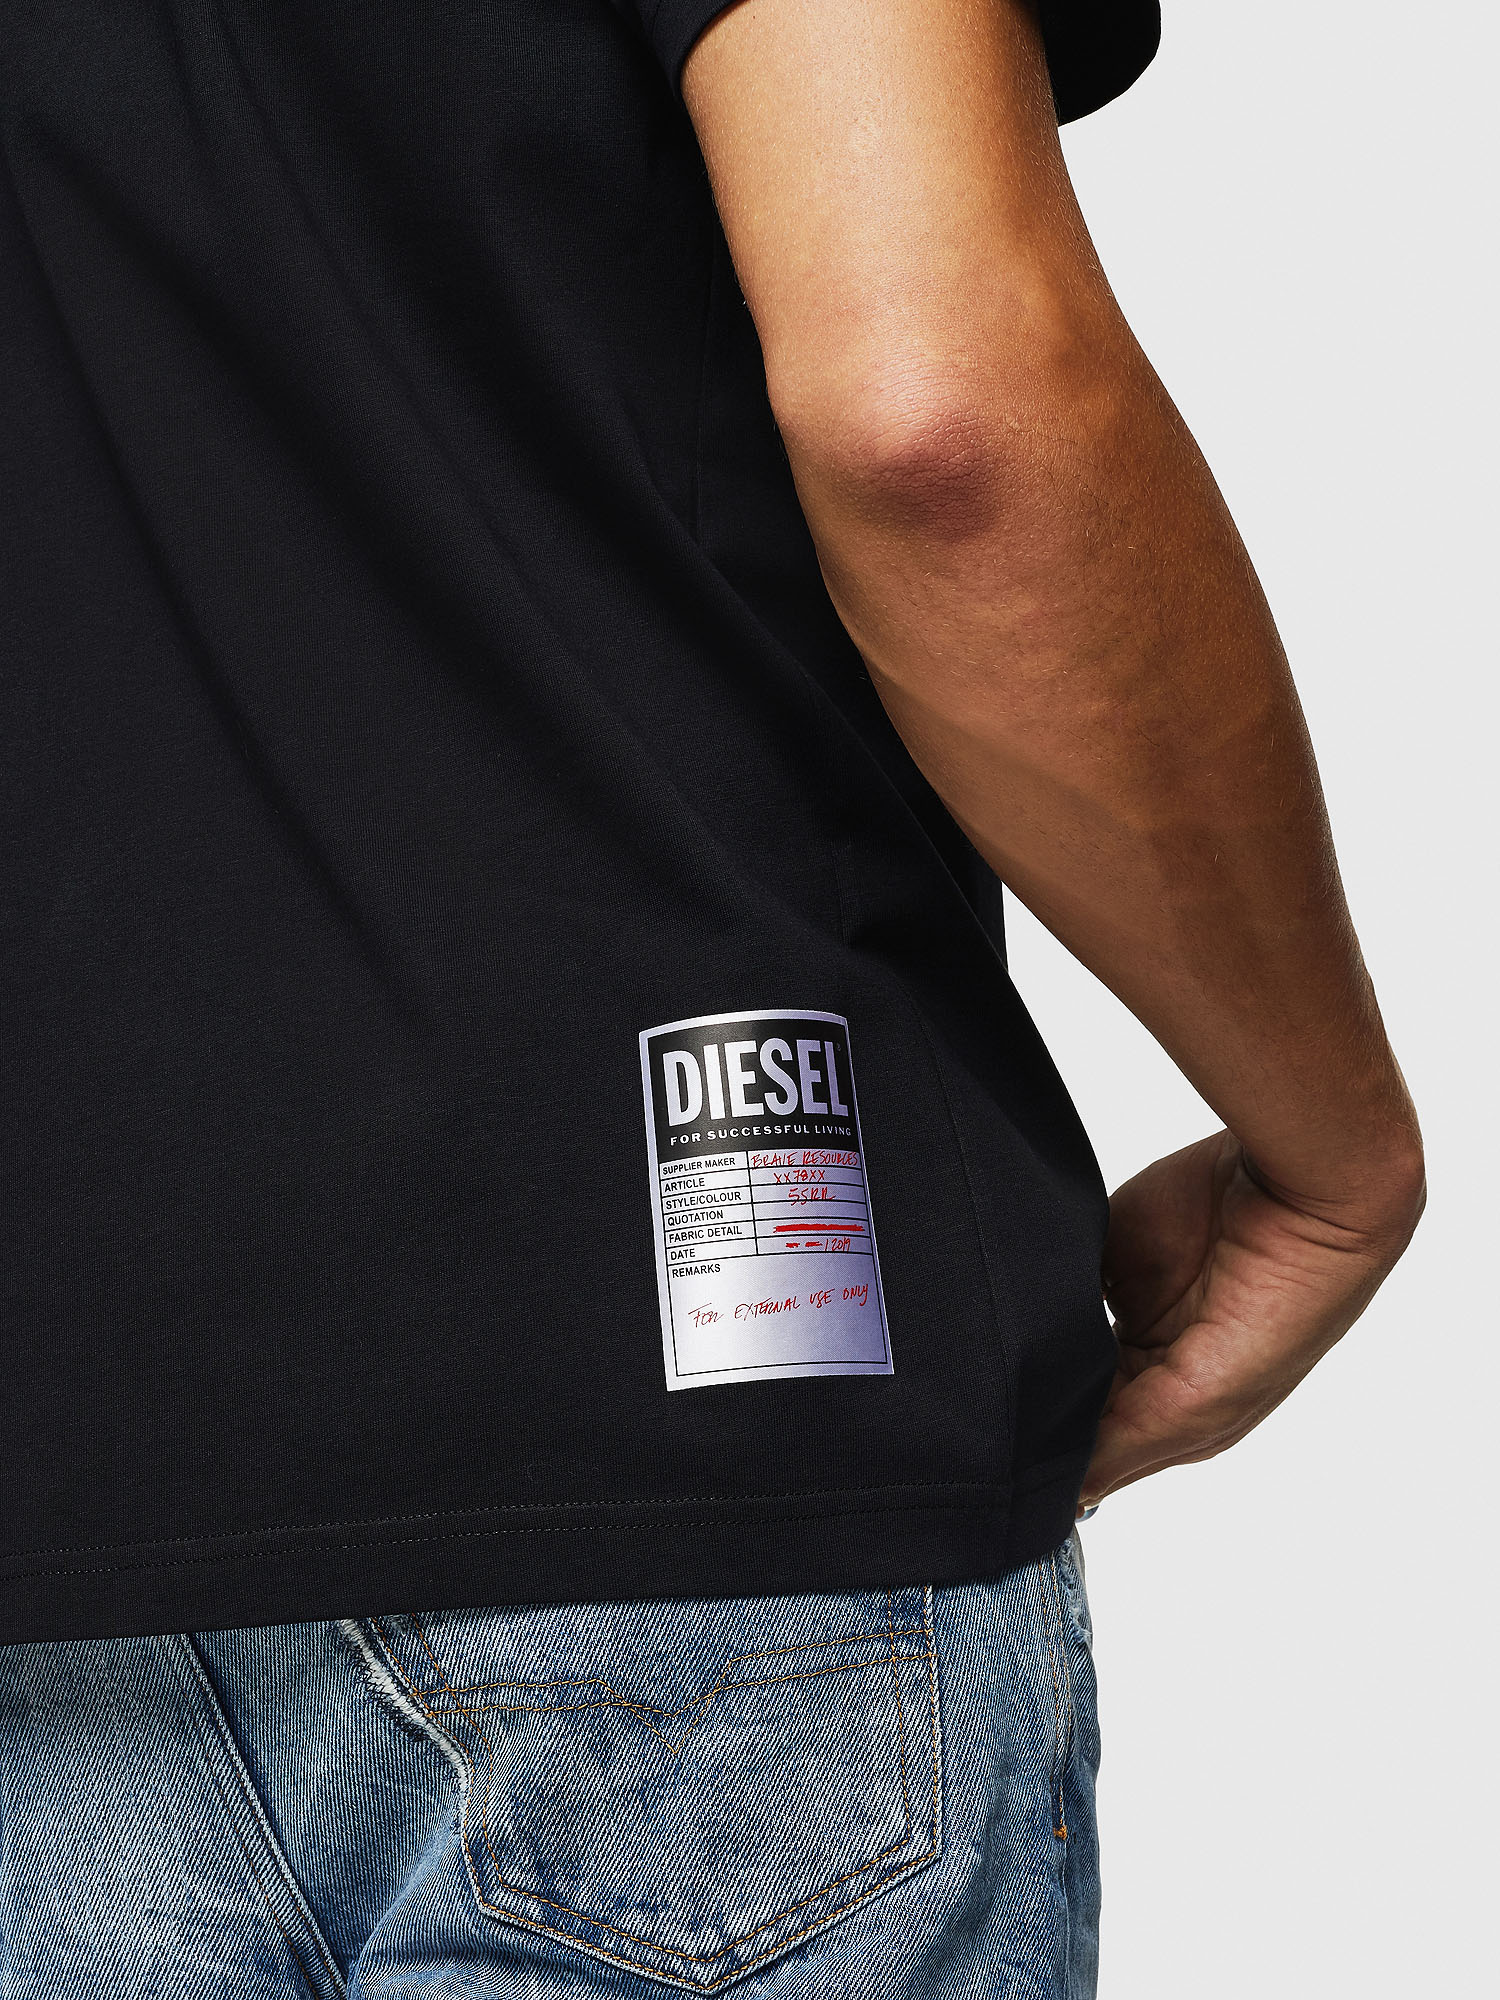 Diesel - T-JUST-B26,  - T-Shirts - Image 3